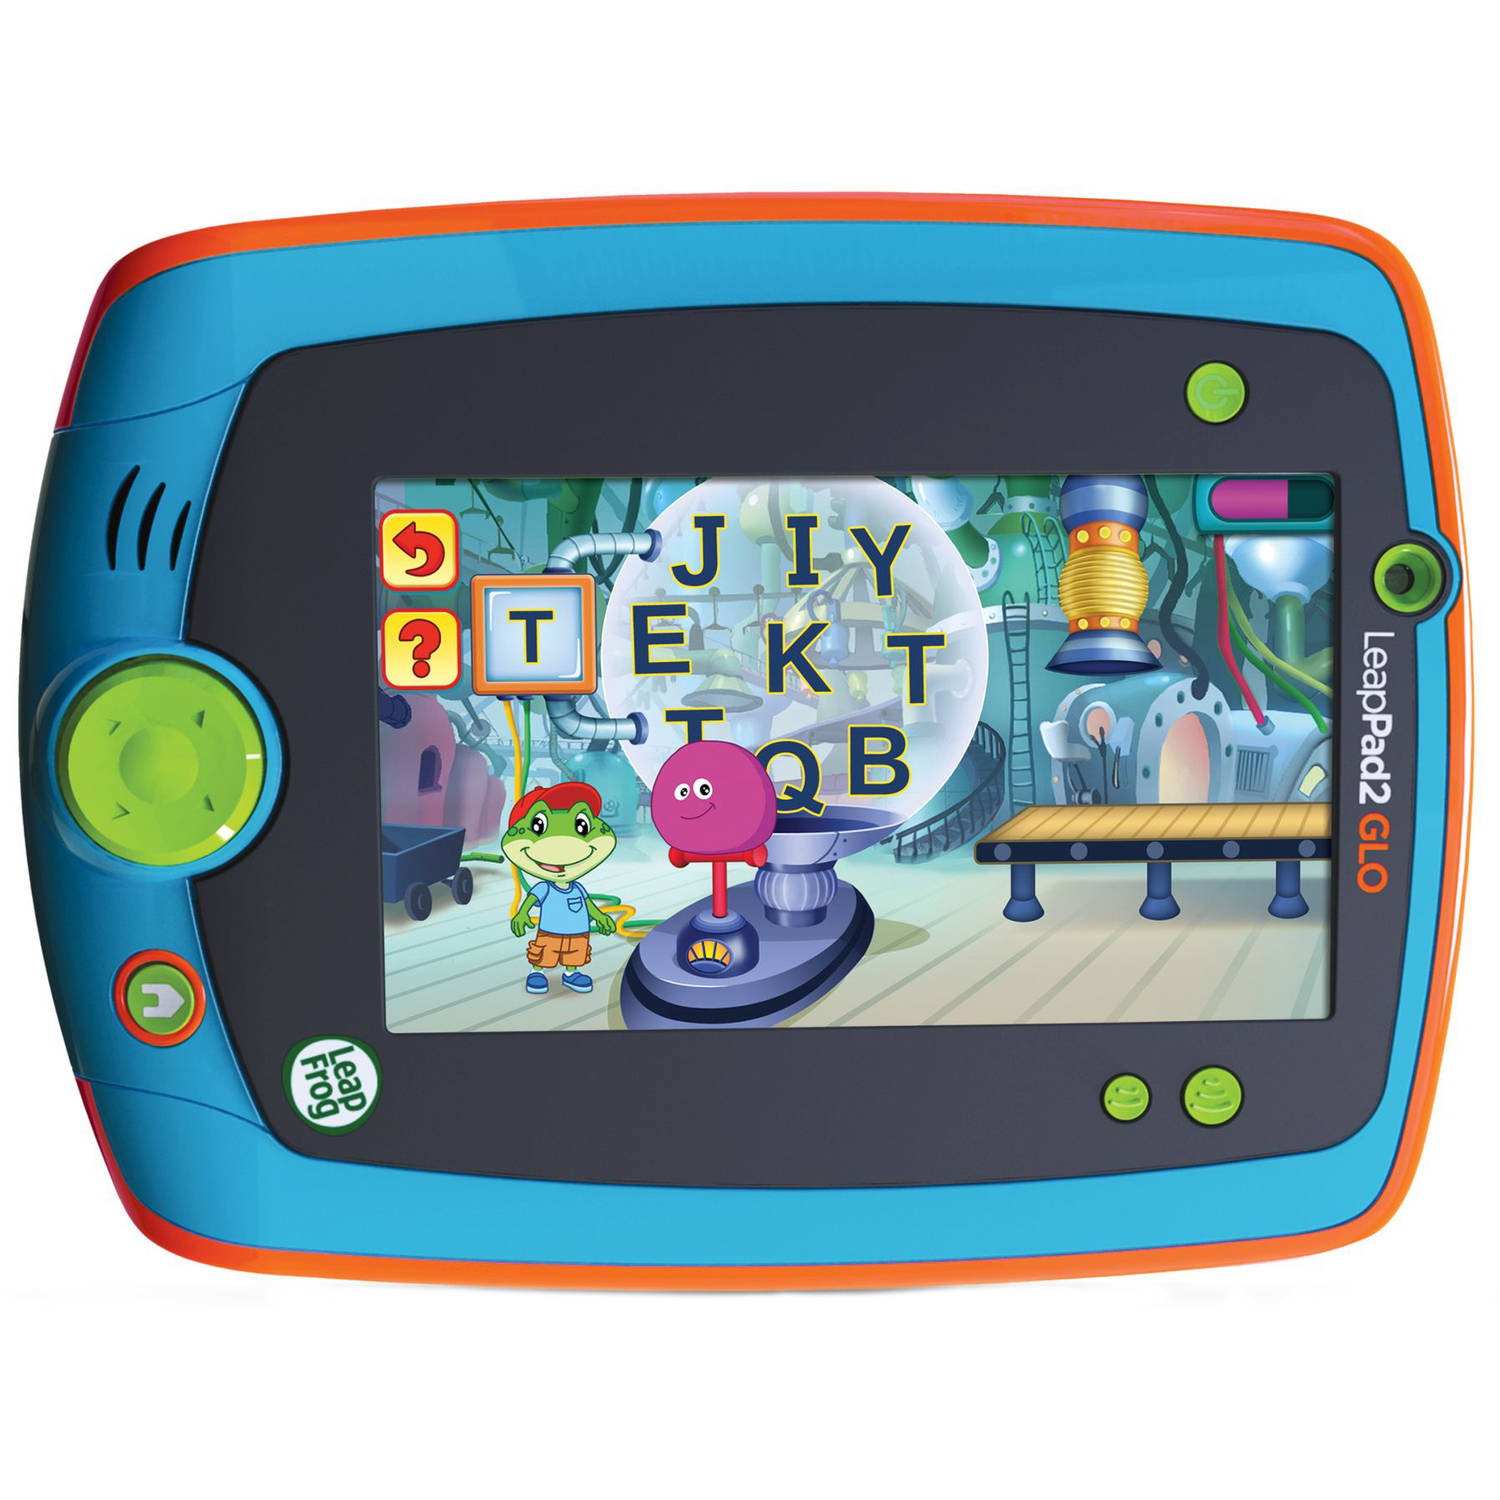 Leapfrog wanted the Leappad to have this feature so as to enable children to become the stars of the stories they are creating, thus involving them more and inspiring their imagination further. Your child will be able to experience and enjoy a whole bunch of stories and games, all in one very handy device, weighing only pounds.